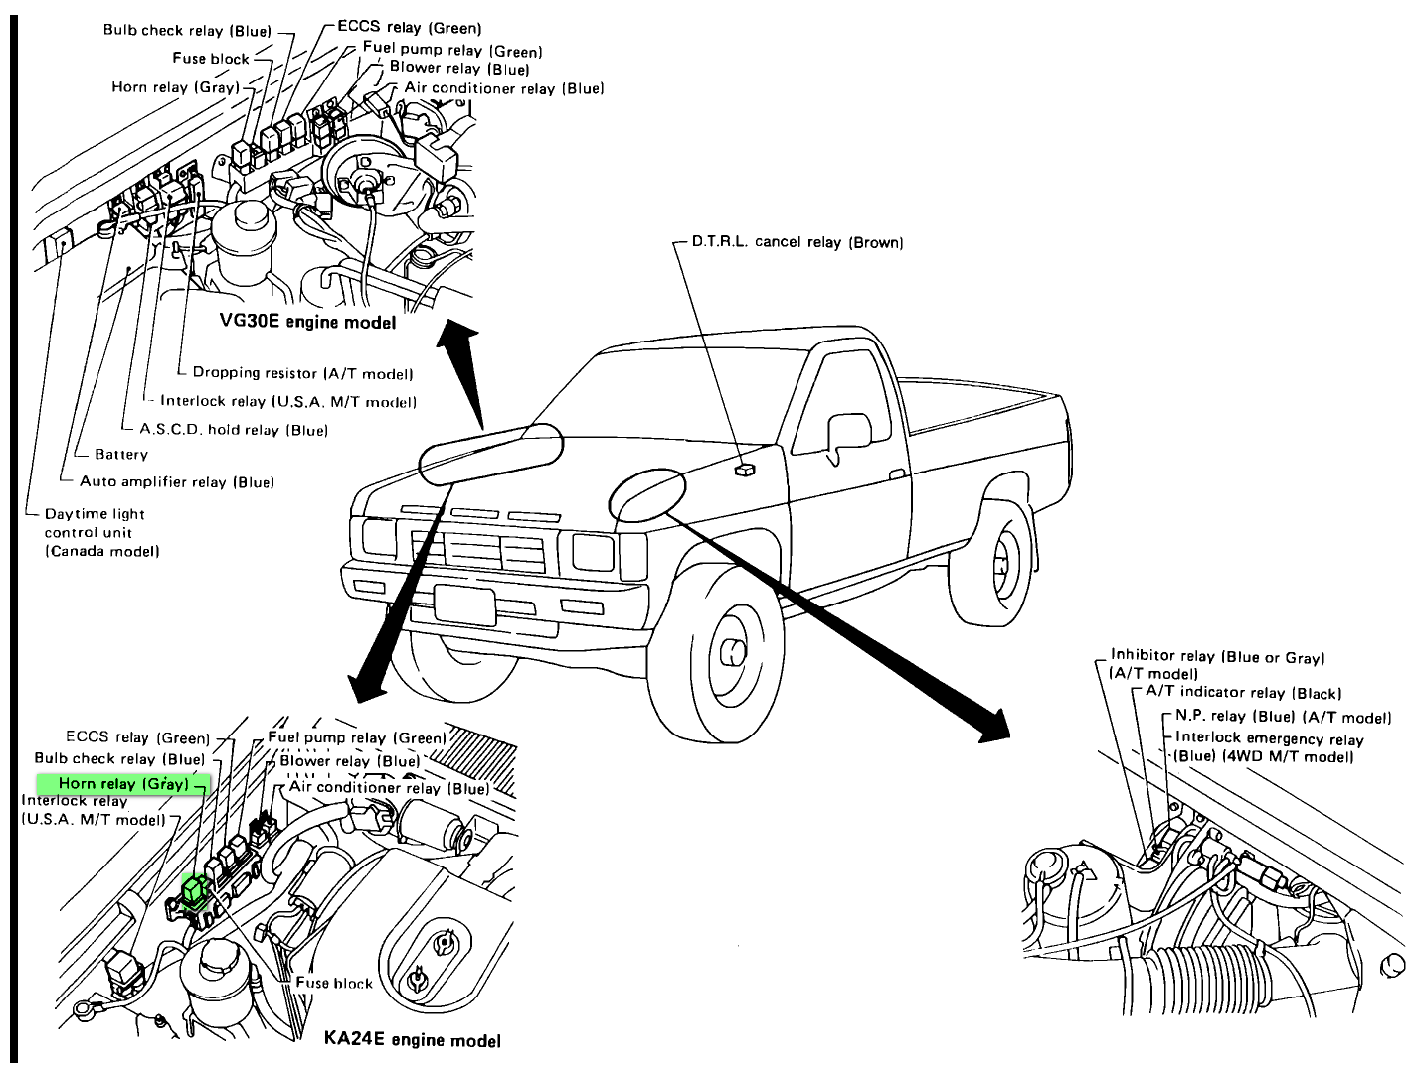 Pathfinder Qx4 General Information And Q A T549378 together with 380289 1991 Nissan Vacuum System furthermore Show product in addition 2012 Nissan Maxima Bose Wiring Maxima Download Free in addition Electrico. on 91 nissan sentra wiring diagram